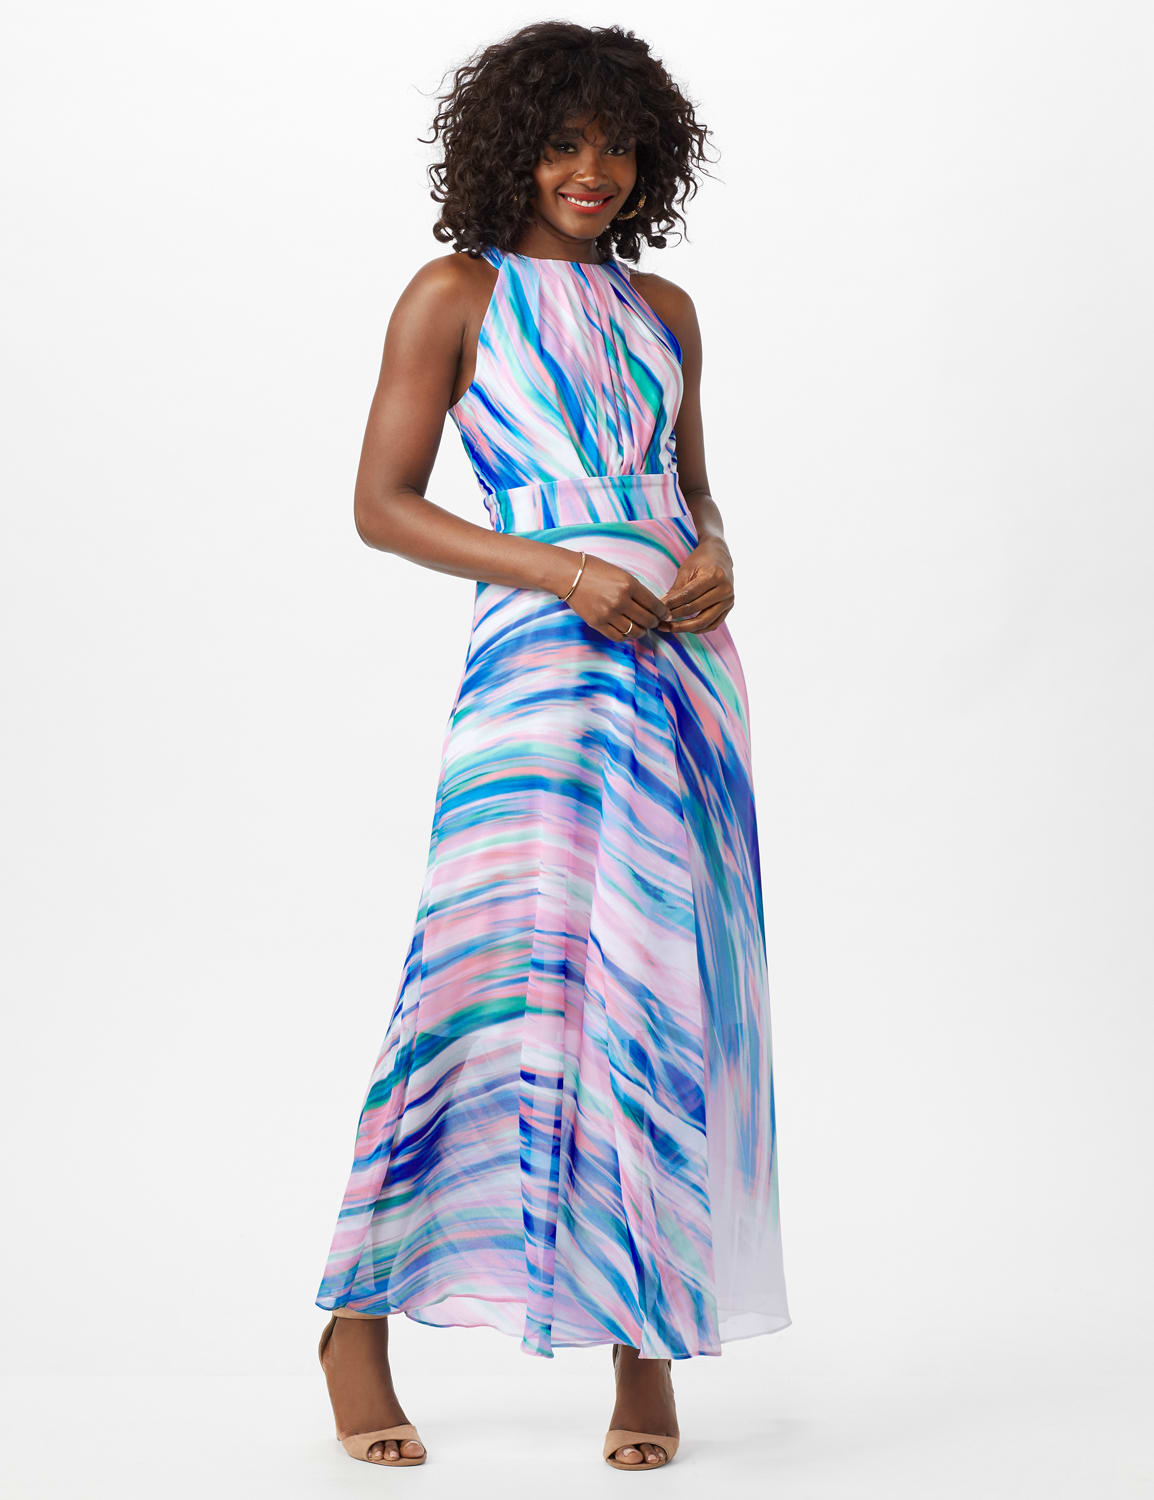 Watercolor Swirl Print Patio Dress - Black/Pink/Multi - Front